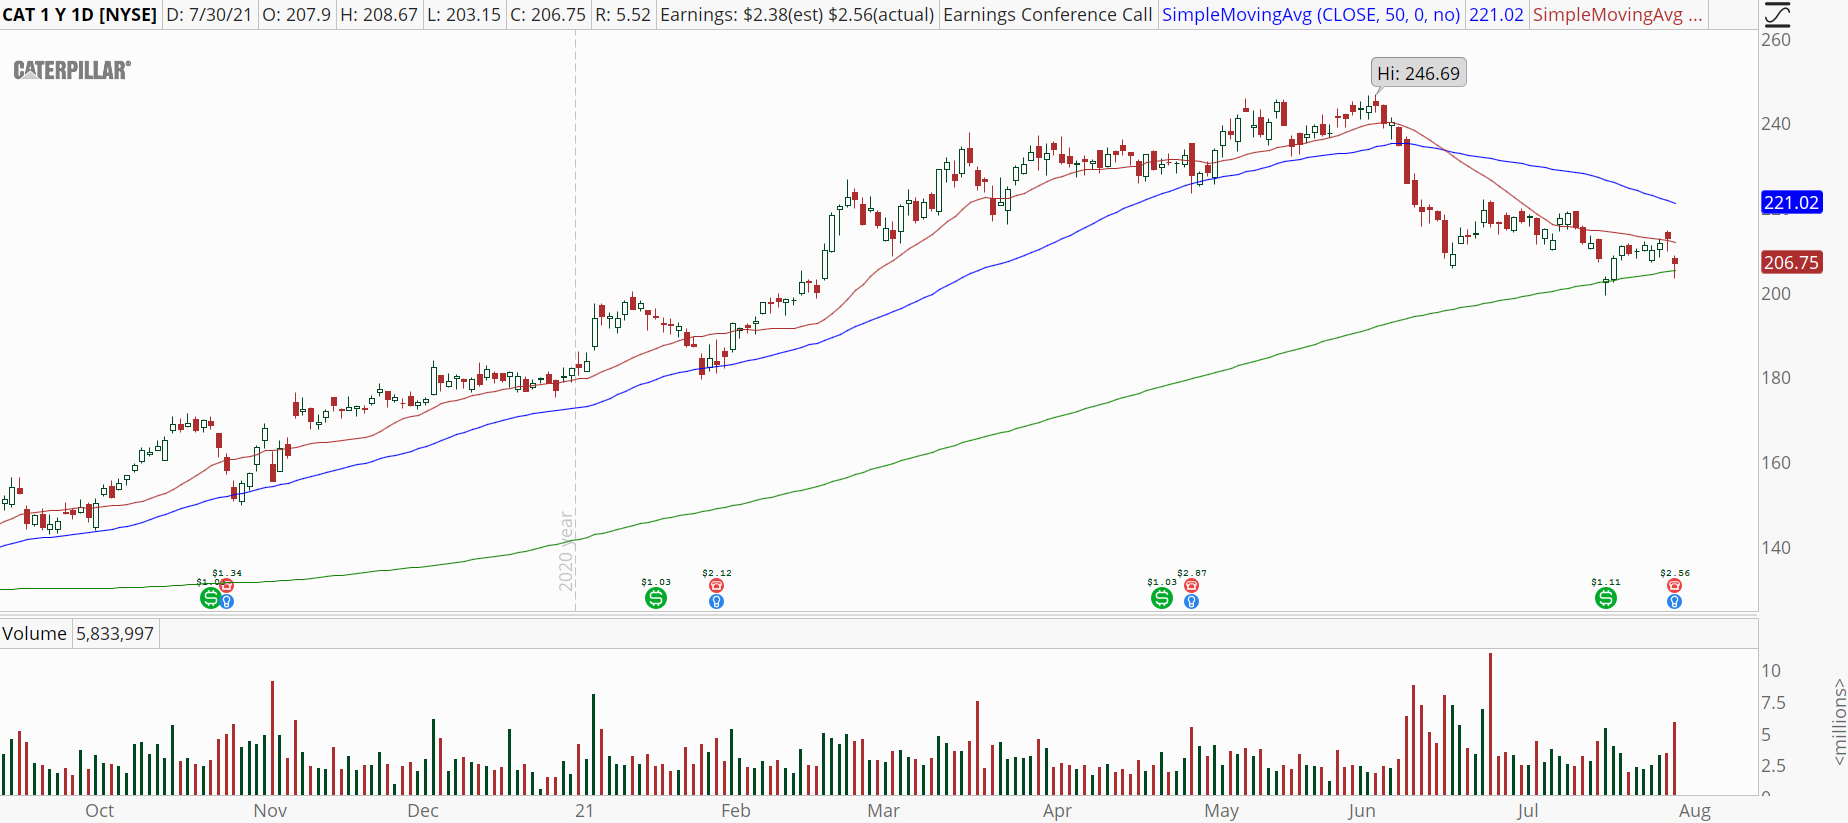 Caterpillar (CAT) stock with daily downtrend.